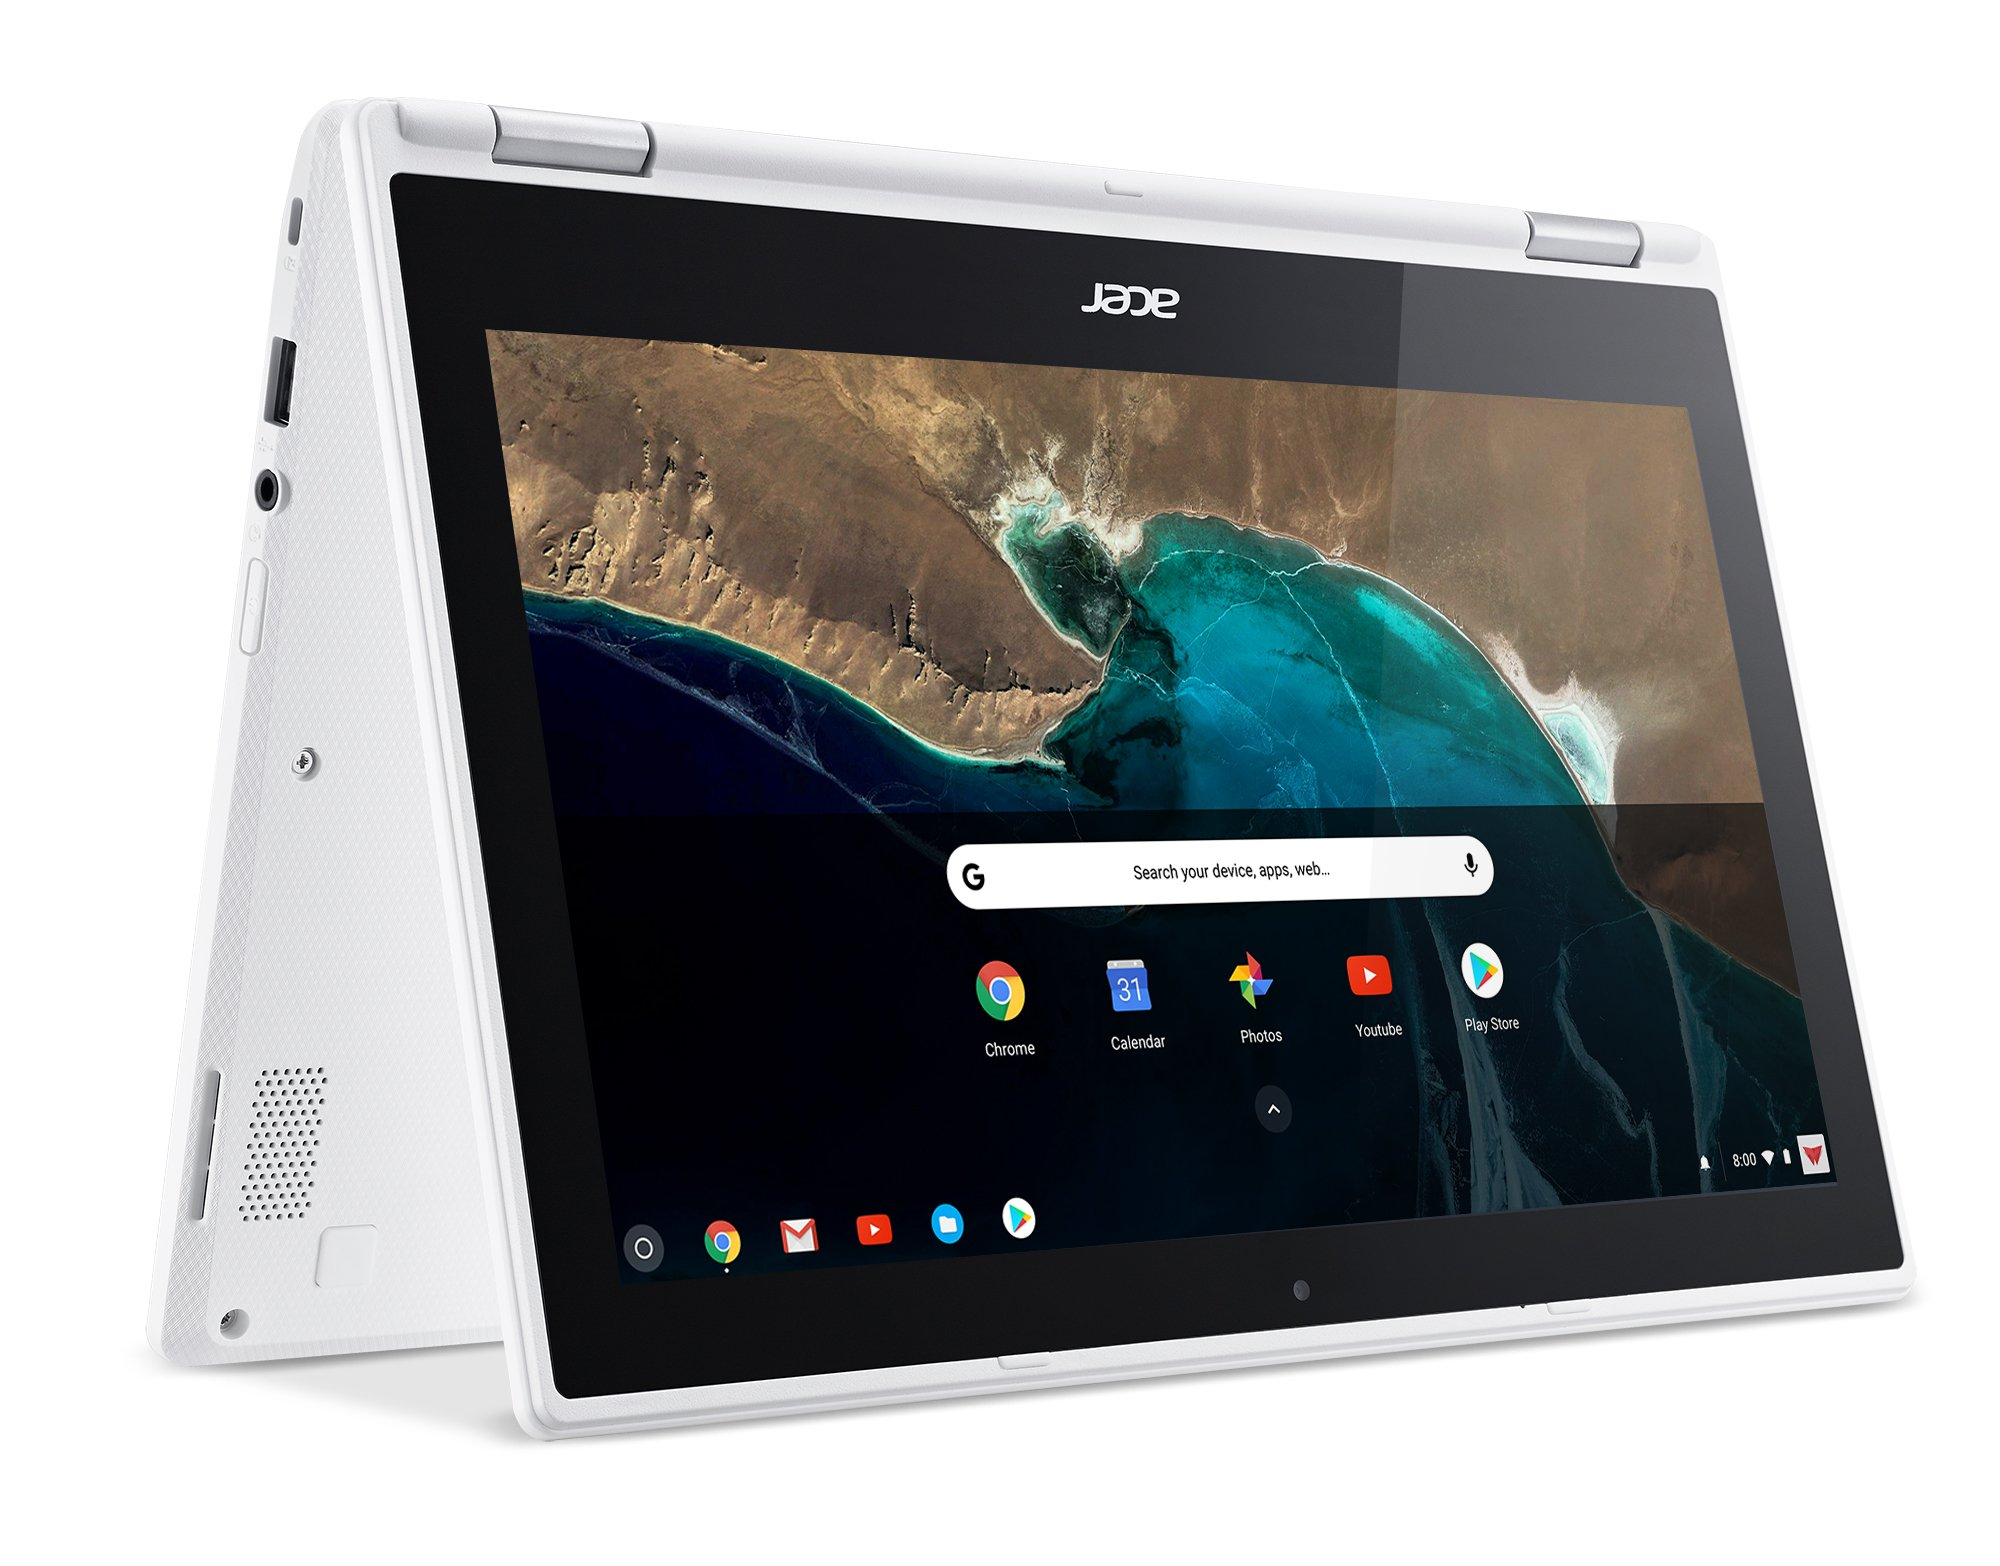 Acer Chromebook R 11 Convertible, 11.6-Inch HD Touch, Intel Celeron N3150, 4GB DDR3L, 32GB, CB5-132T-C1LK, Denim White